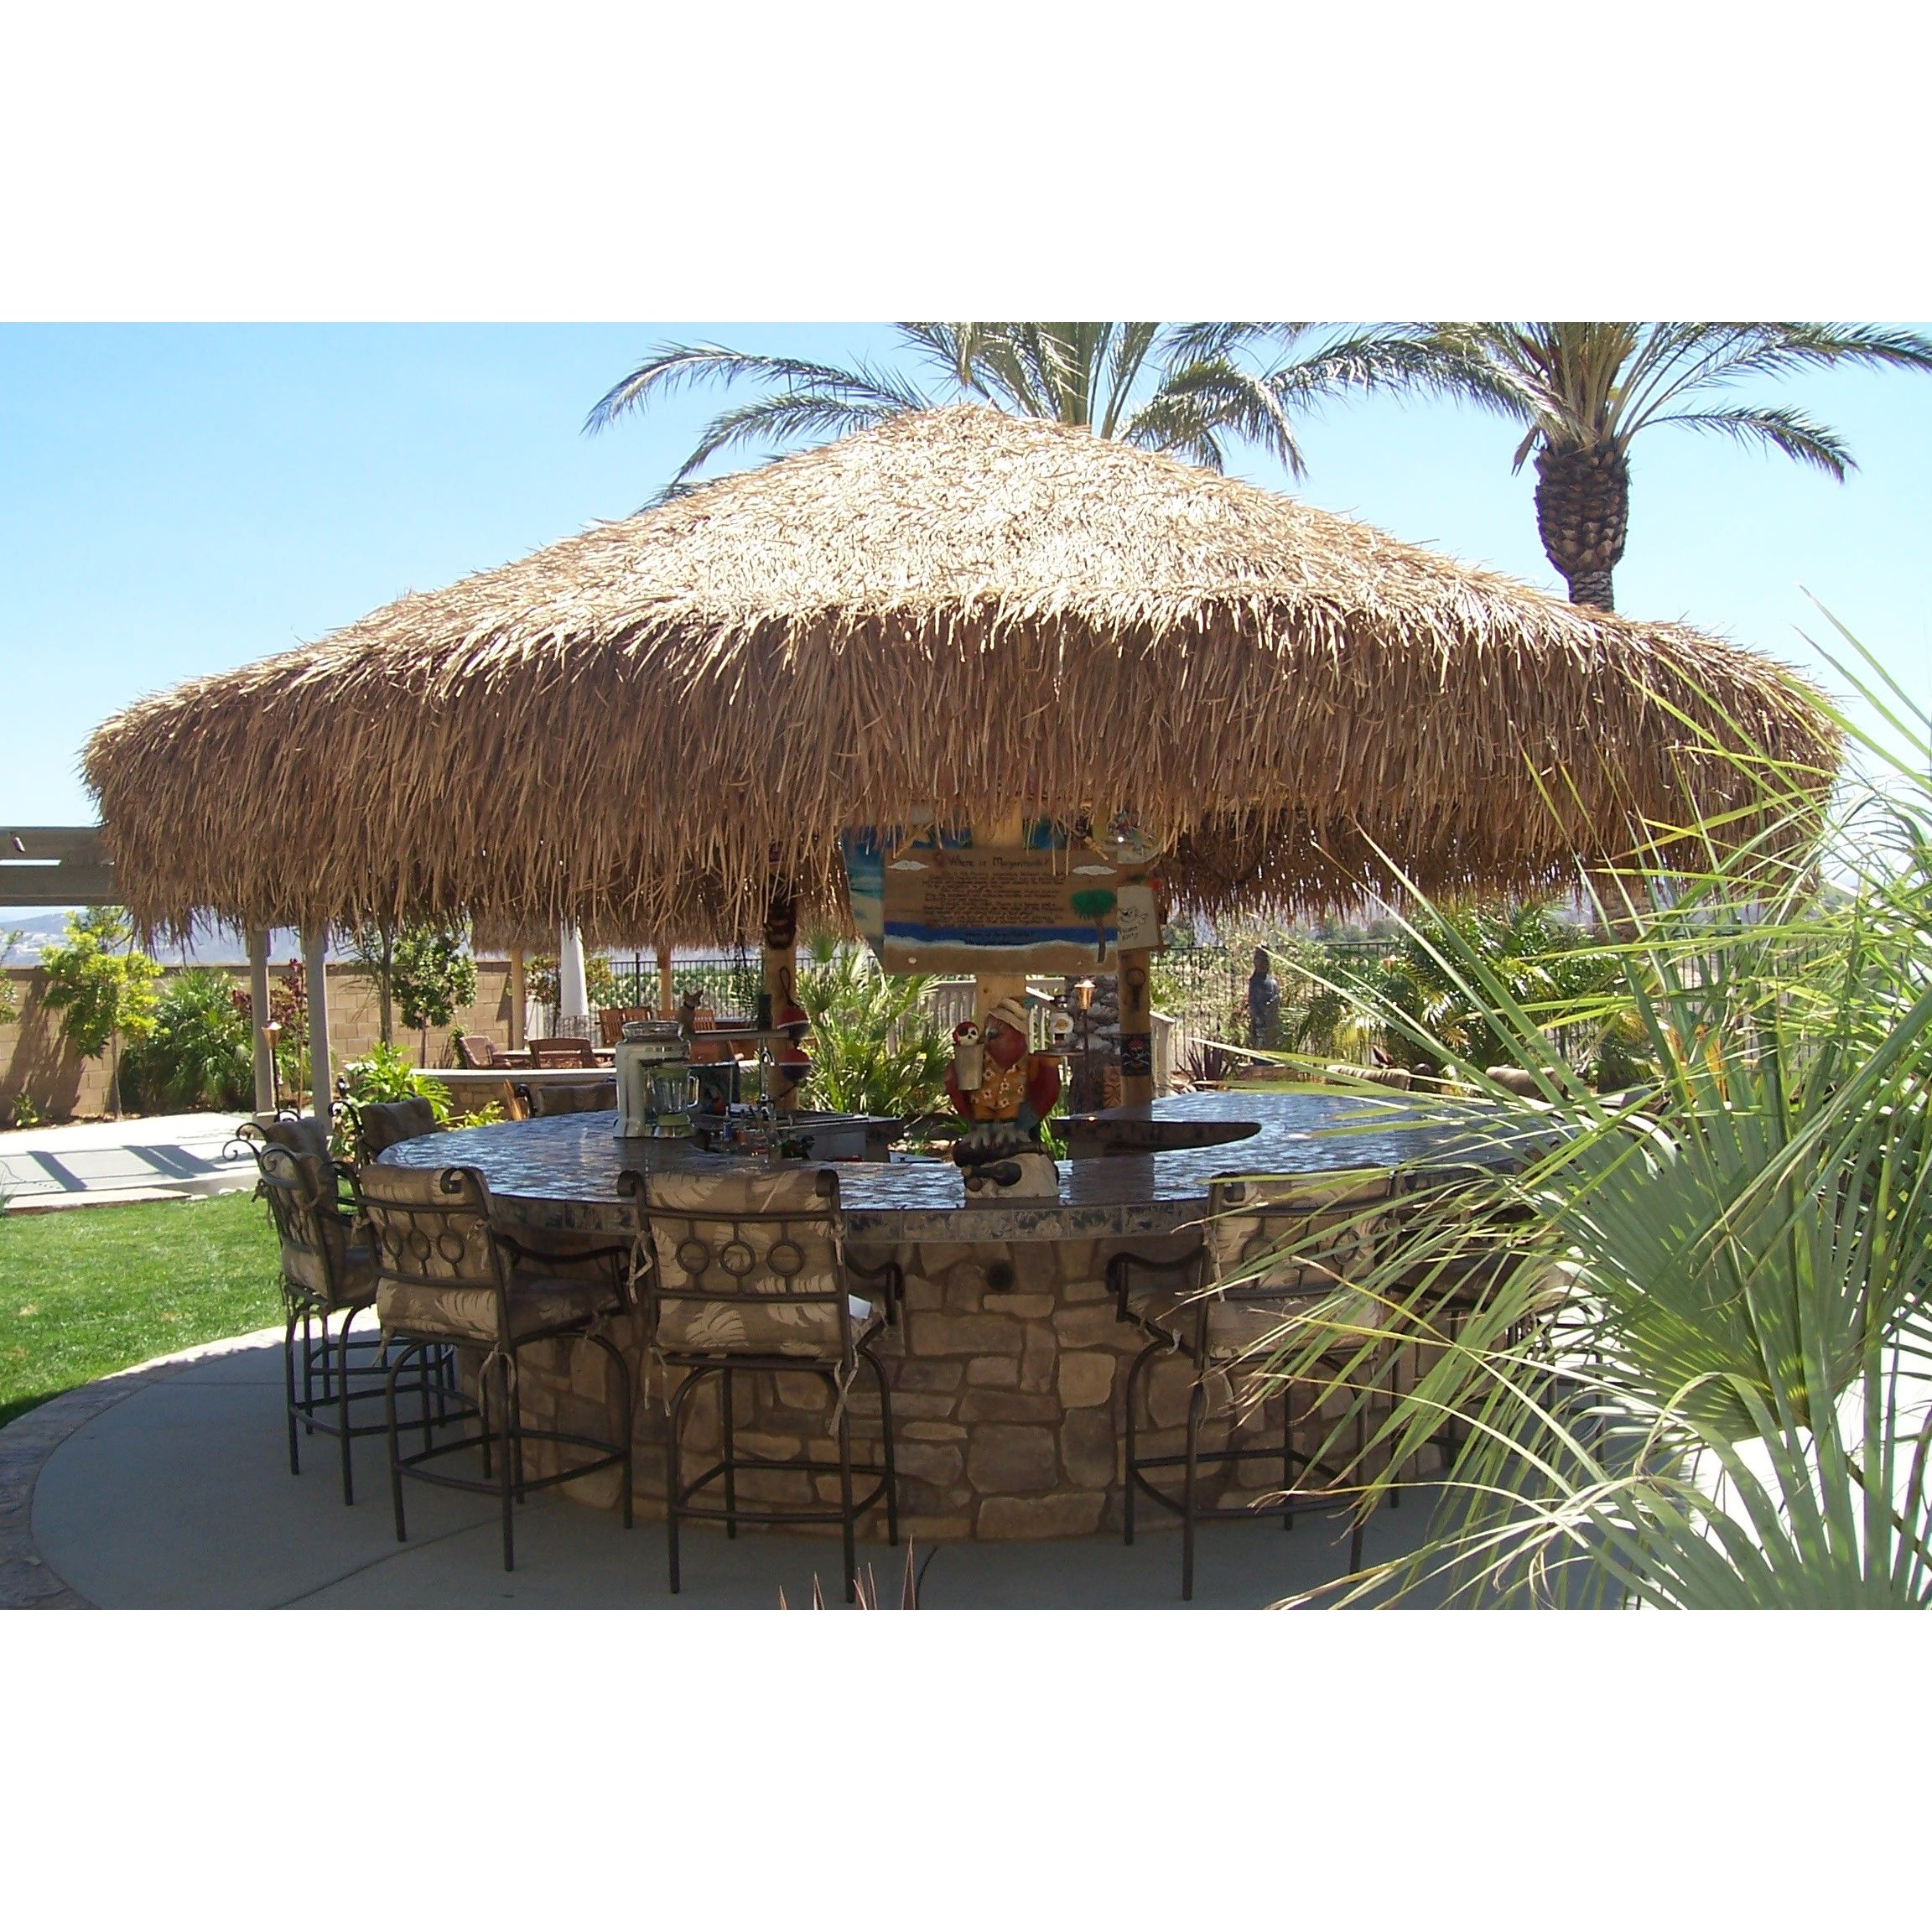 Outdoor Kitchen With Thatched Gazebo Outdoor In 2019: Mexican Palm Thatch Umbrella Cover 14'